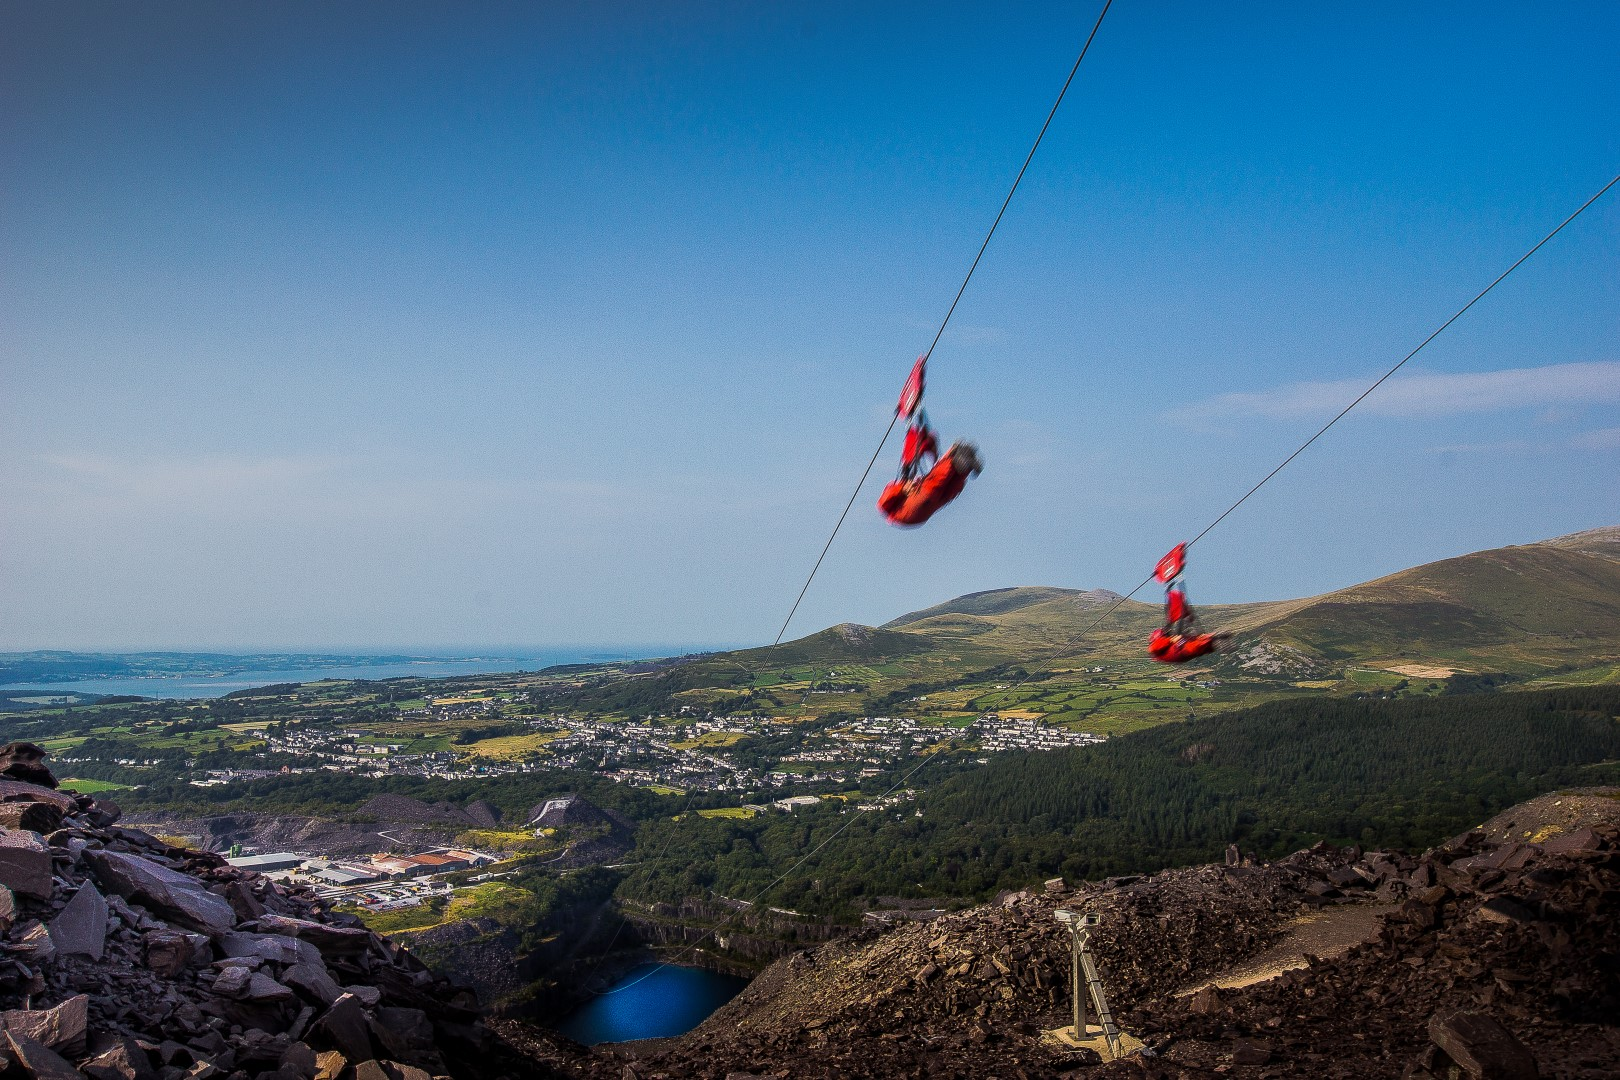 Zip World Velocity. An Adventurous Weekend in North Wales. What to see and do in North Wales in just 48 hours. North Wales weekend guide travel blog. Snowdonia National Park, Zip World, Velocity, Bounce Below, Criccieth, Portmeirion, Caernarfon, Pwlhelli. Click through to read more...